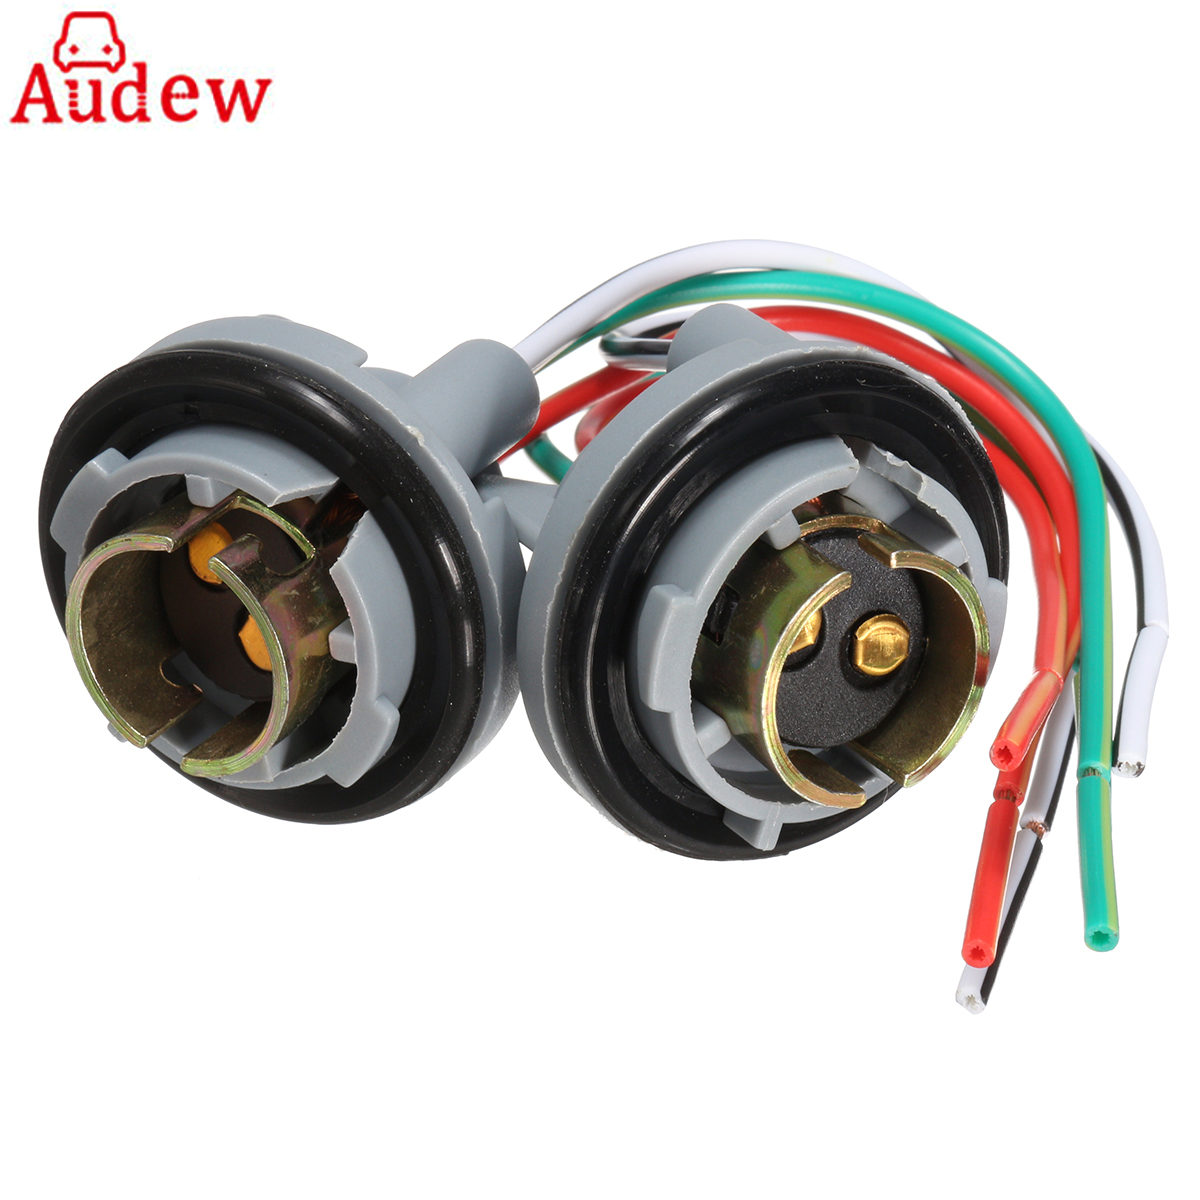 Hot Sale 2pcs Turn Light Brake Led Bulb Sockets Connector Wire Wiring Harness Alligator Fence For 1157 Bay15d Base